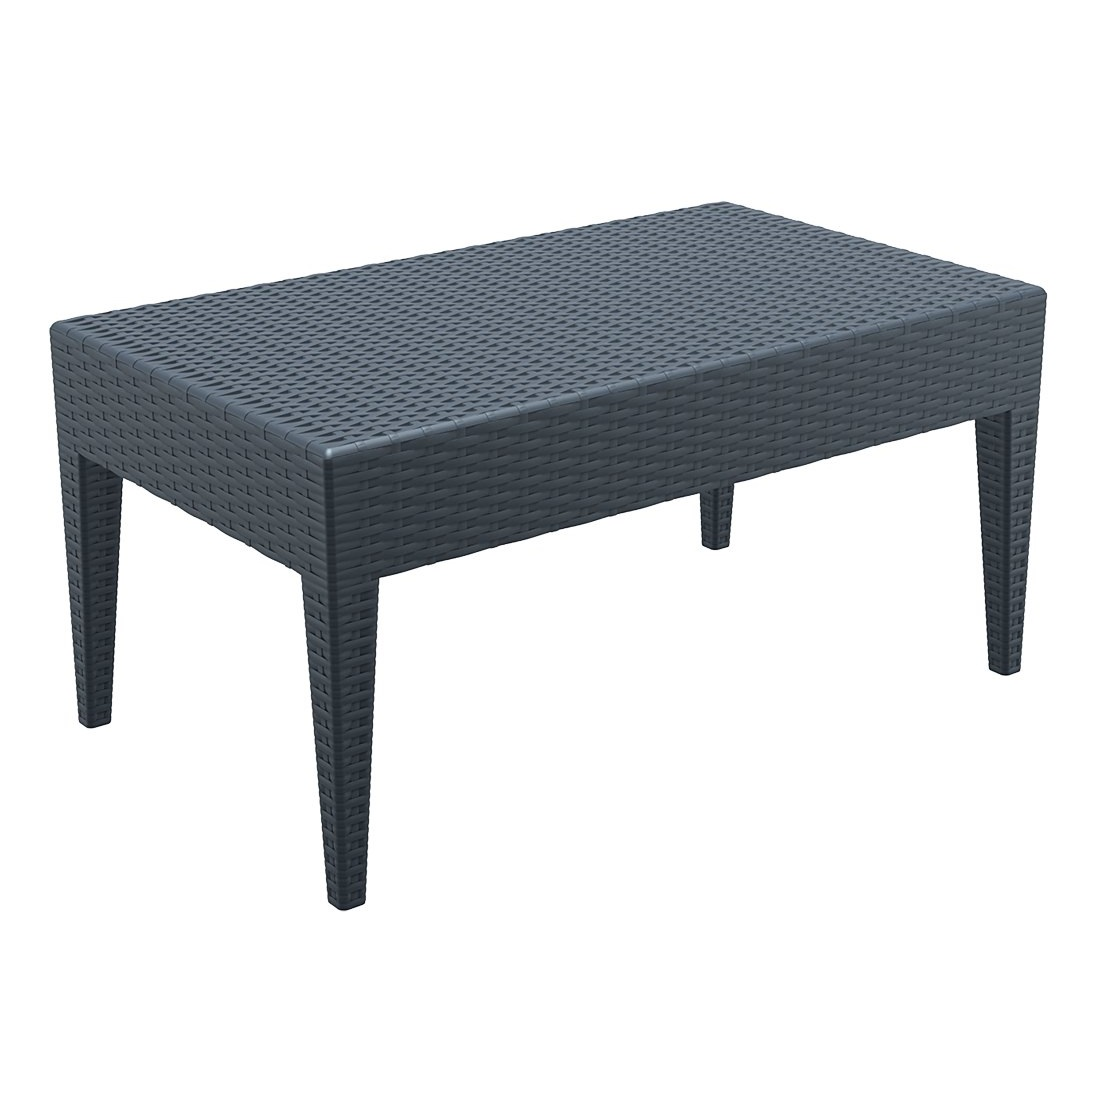 Tequila Lounge Coffee Table - 920x530